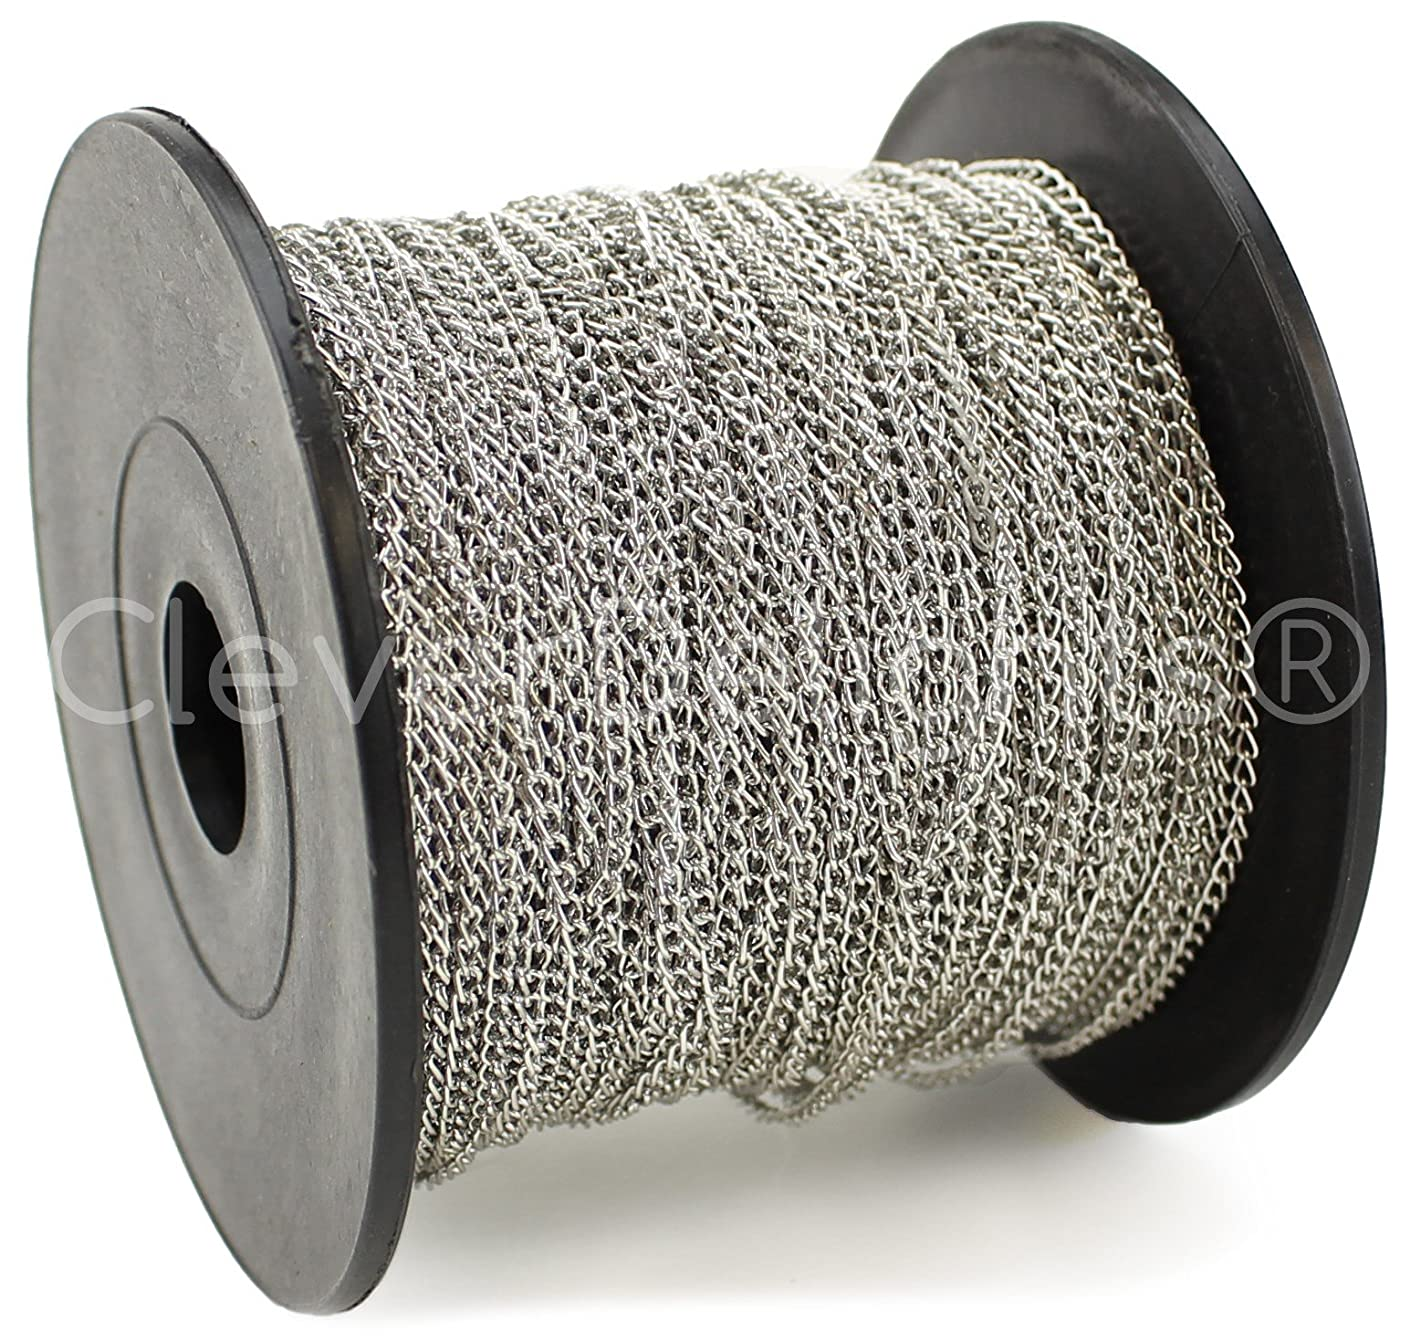 CleverDelights Curb Chain Spool - 2x3mm Link - Antique Silver (Platinum) Color - 330 Feet - Bulk Chain Roll